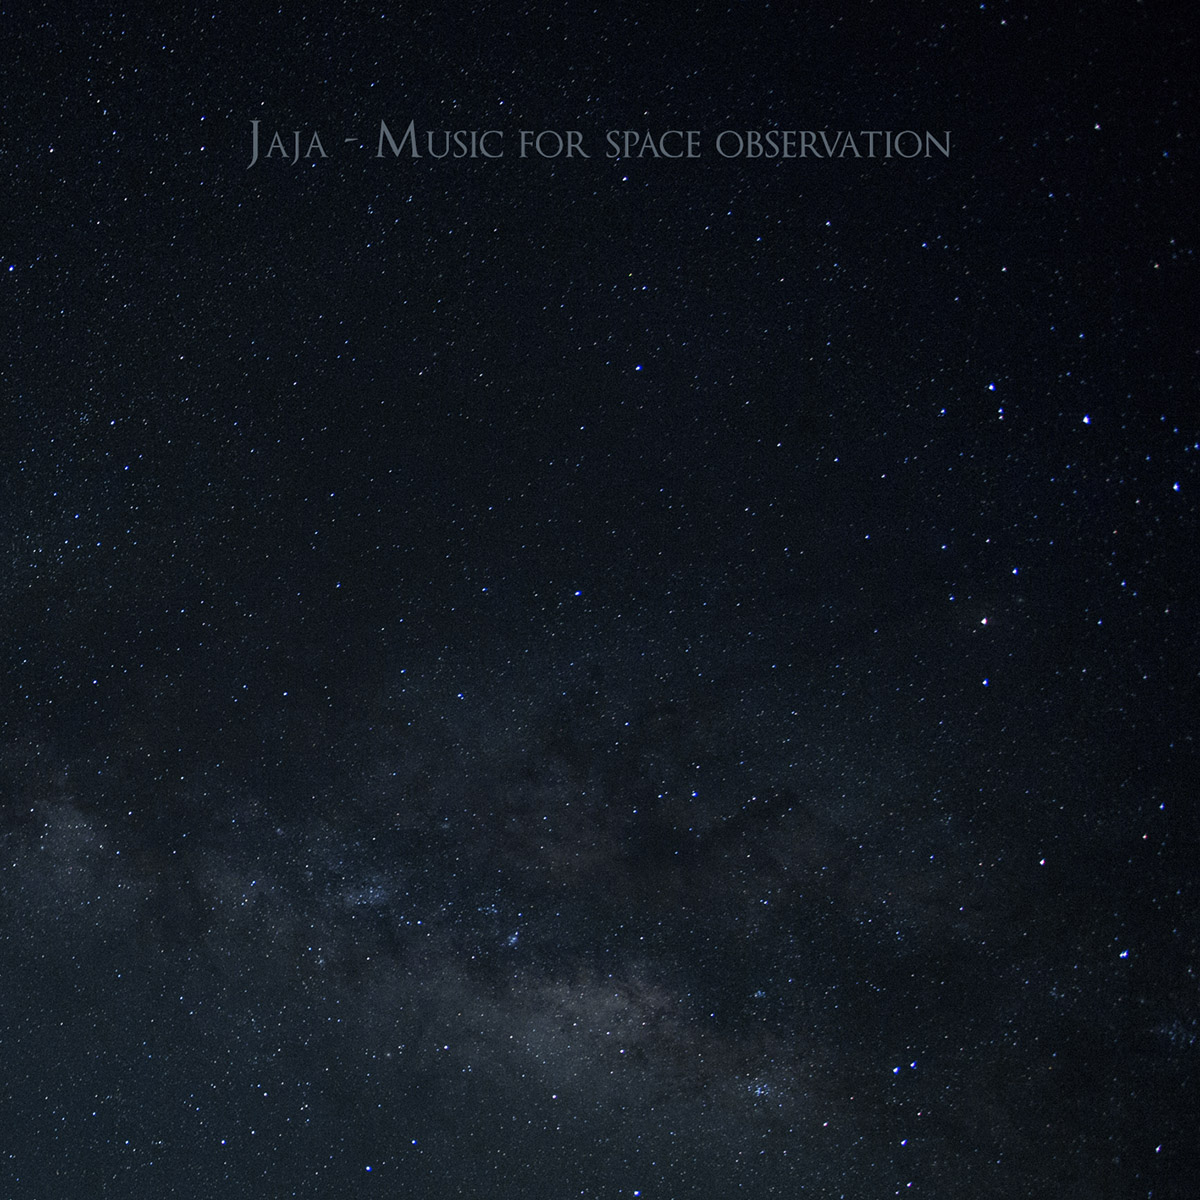 CYAN ⟩ RELEASES ⟩ JAJA ⟩ MUSIC FOR SPACE OBSERVATION